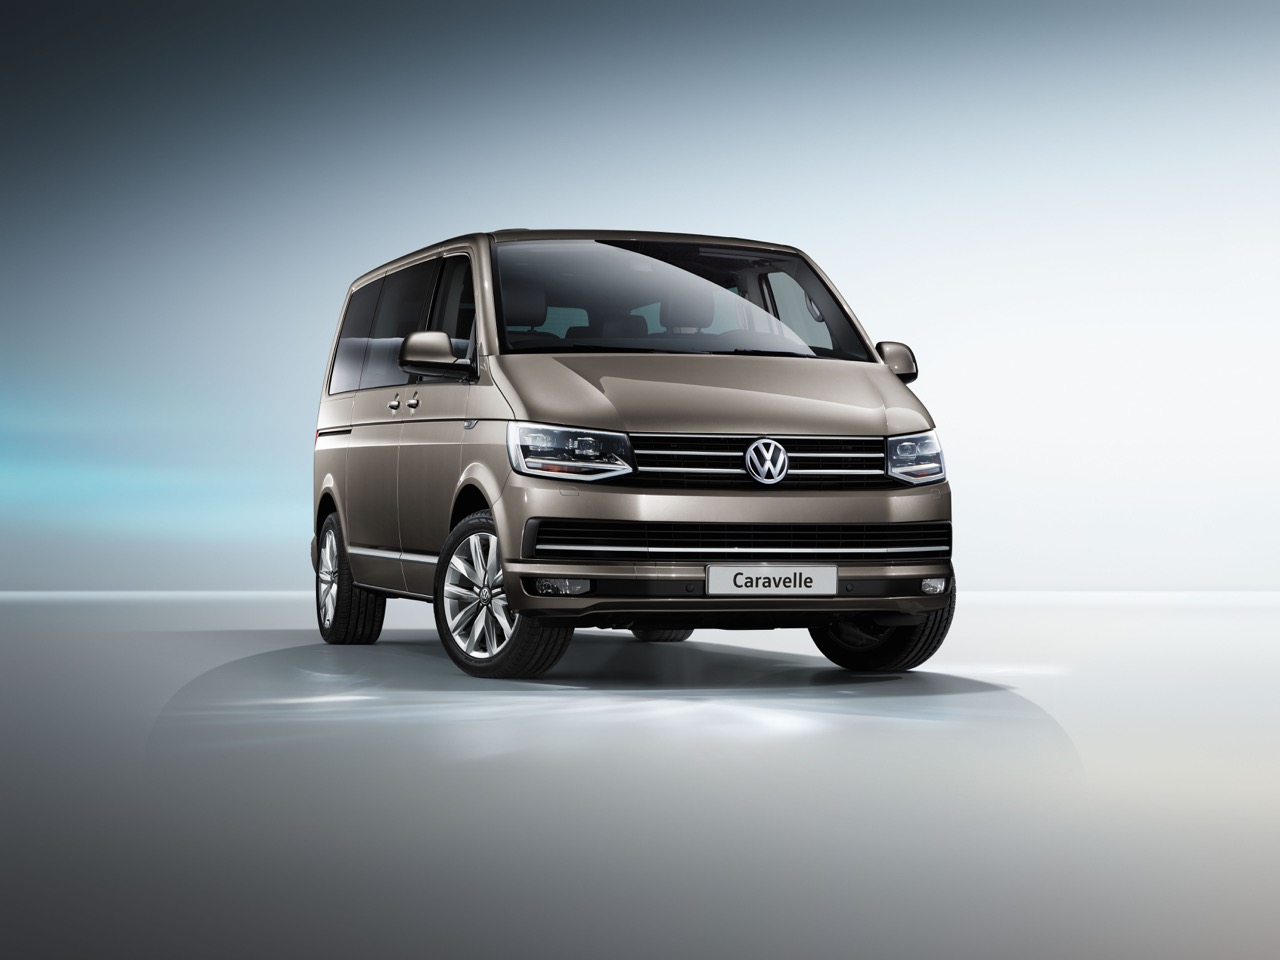 volkswagen caravelle review. Black Bedroom Furniture Sets. Home Design Ideas